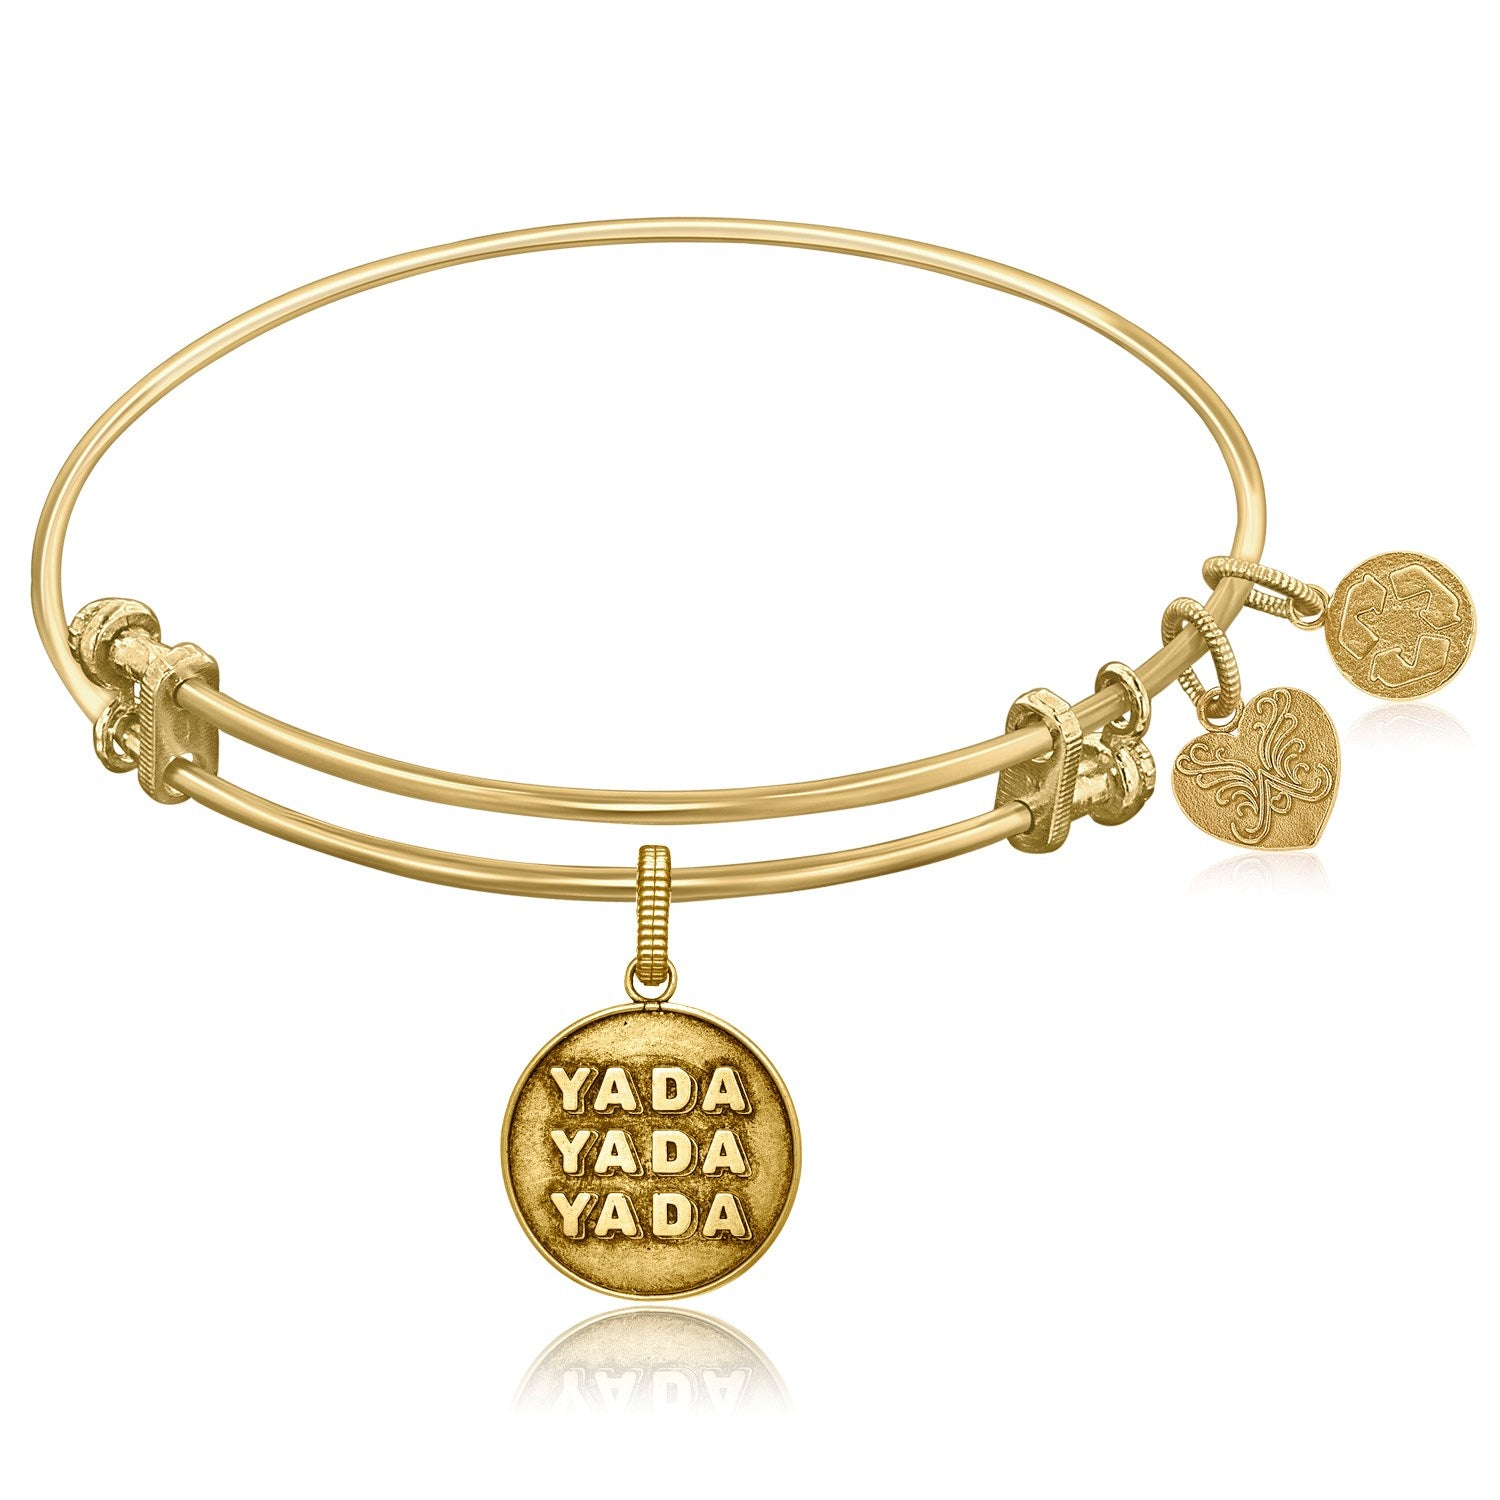 Expandable Yellow Tone Brass Bangle with Seinfeld Yada-Yada-Yada Symbol